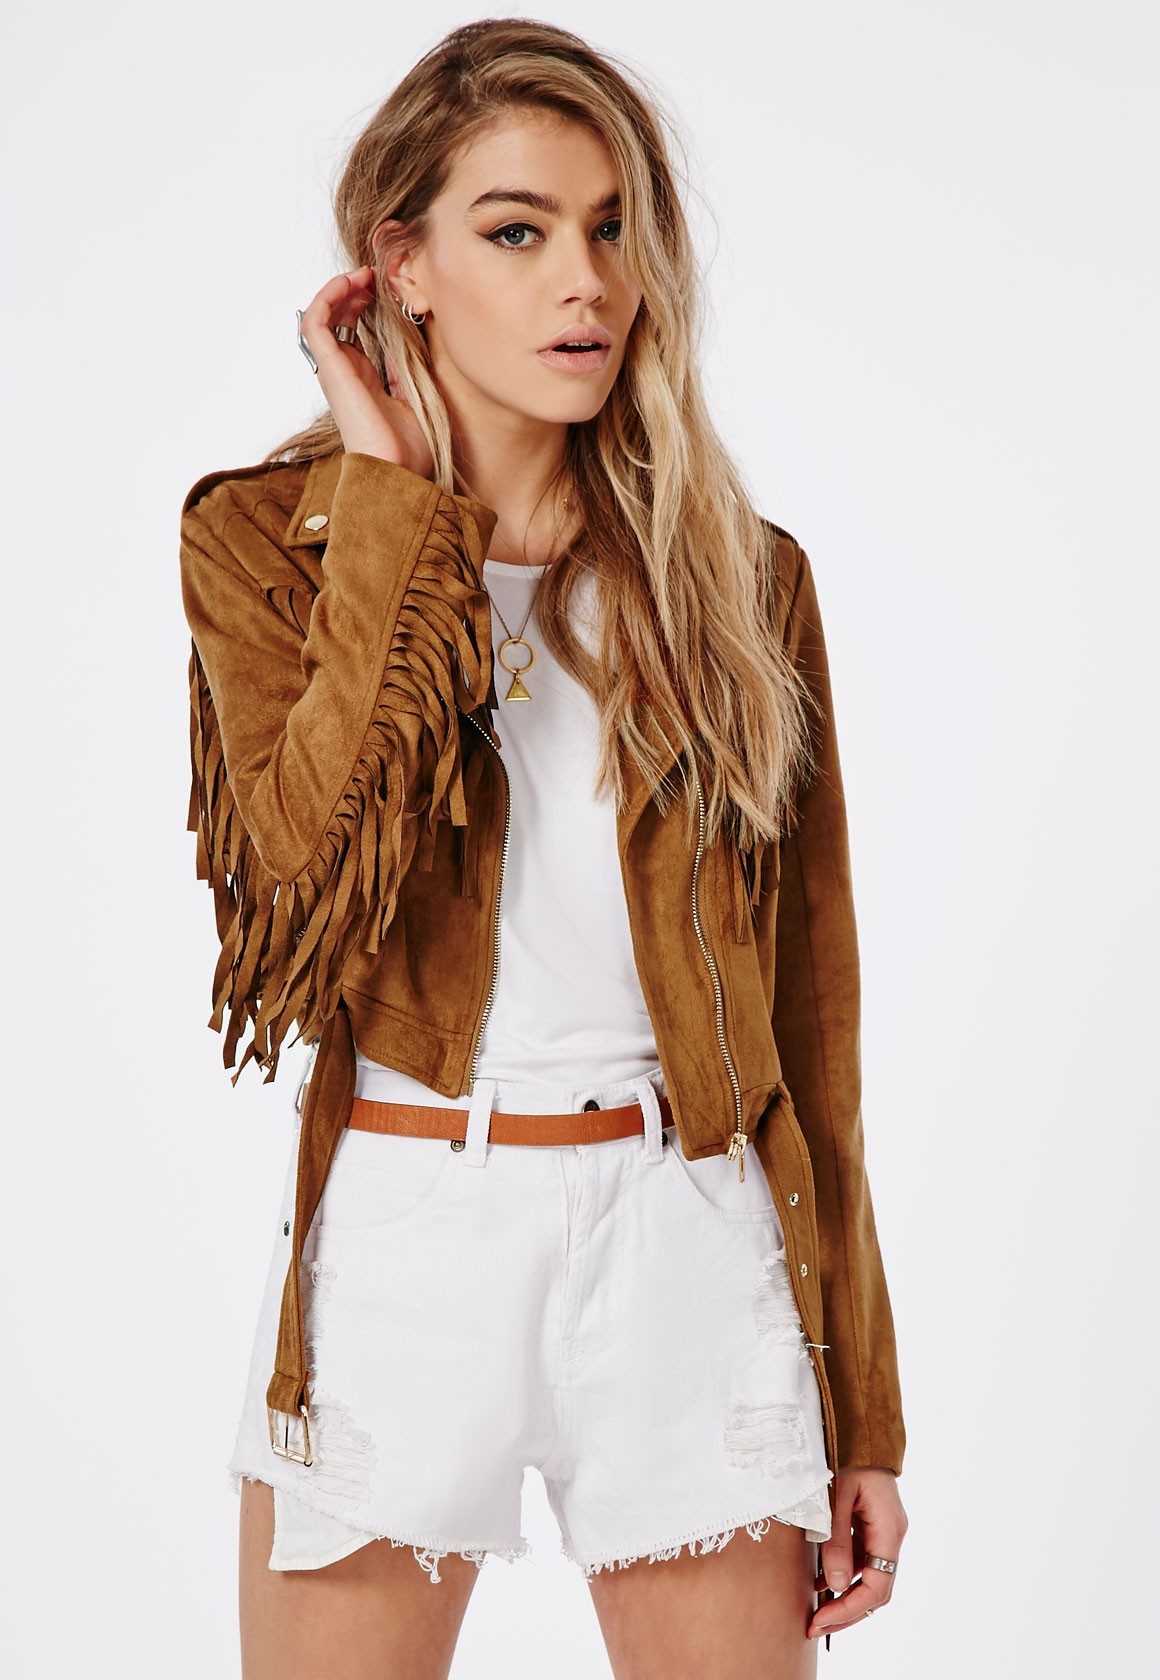 Lyst - Missguided Fringed Faux Suede Biker Jacket Tan in Brown